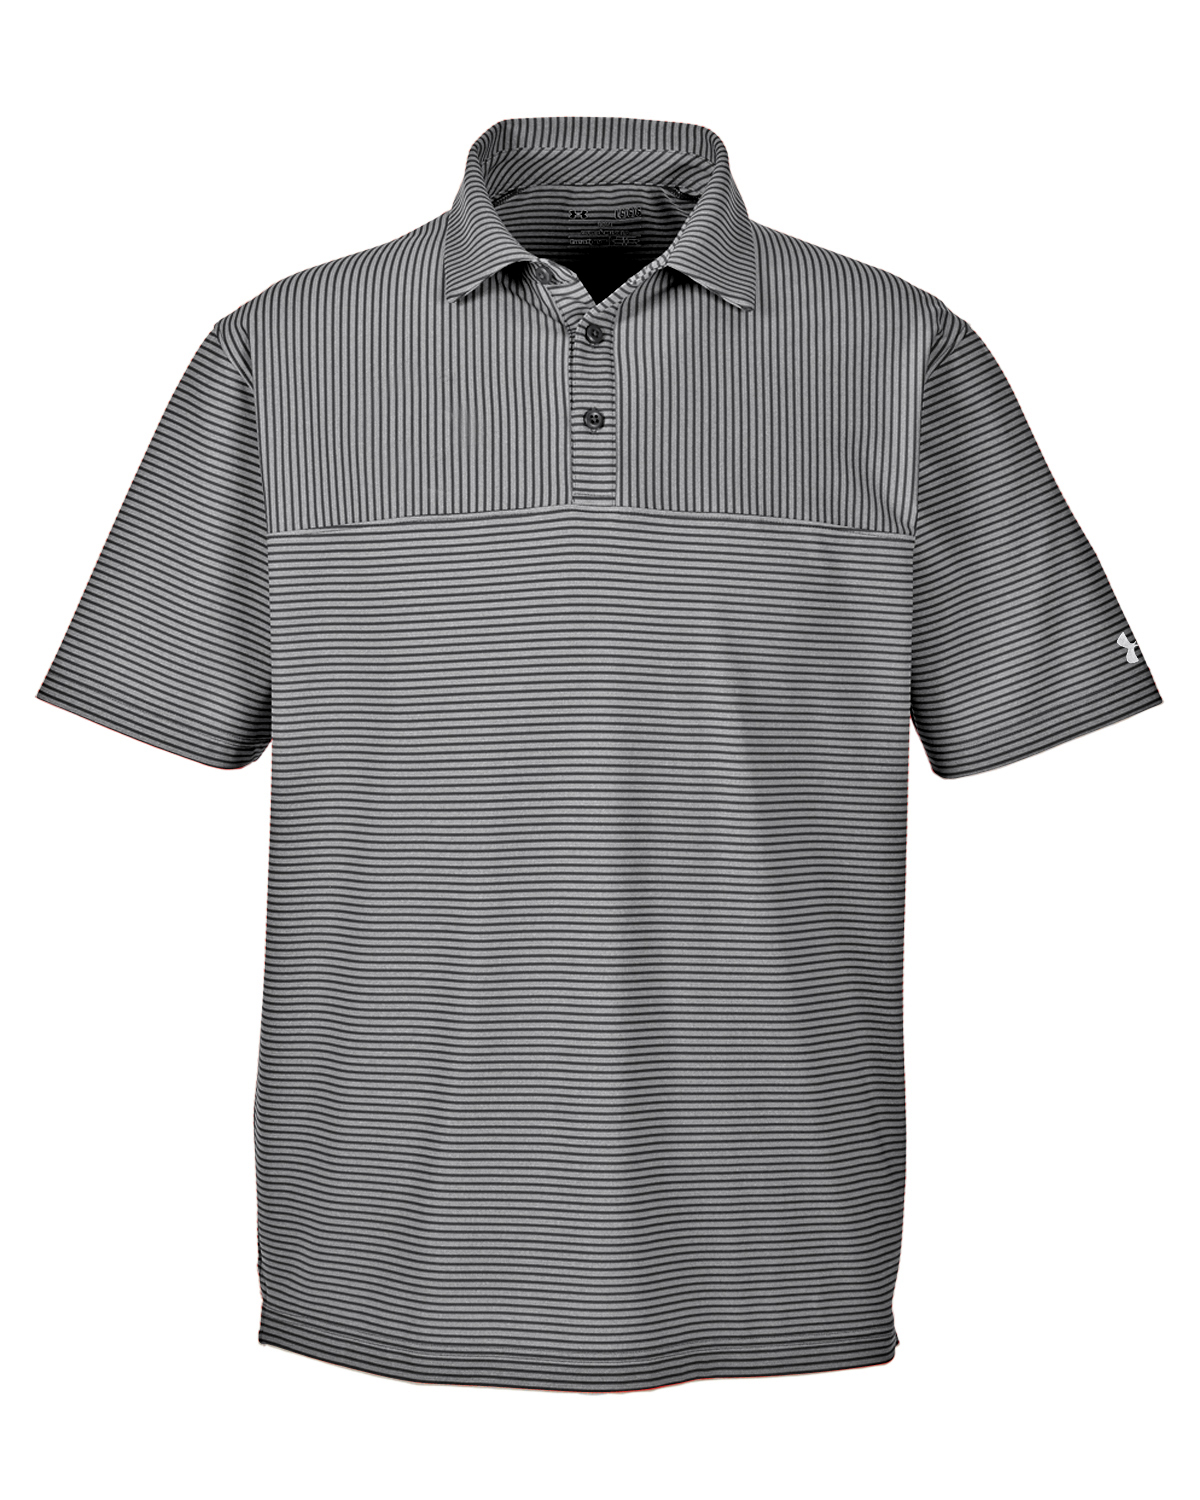 Under Armour 1283706 - Men's Playoff Polo